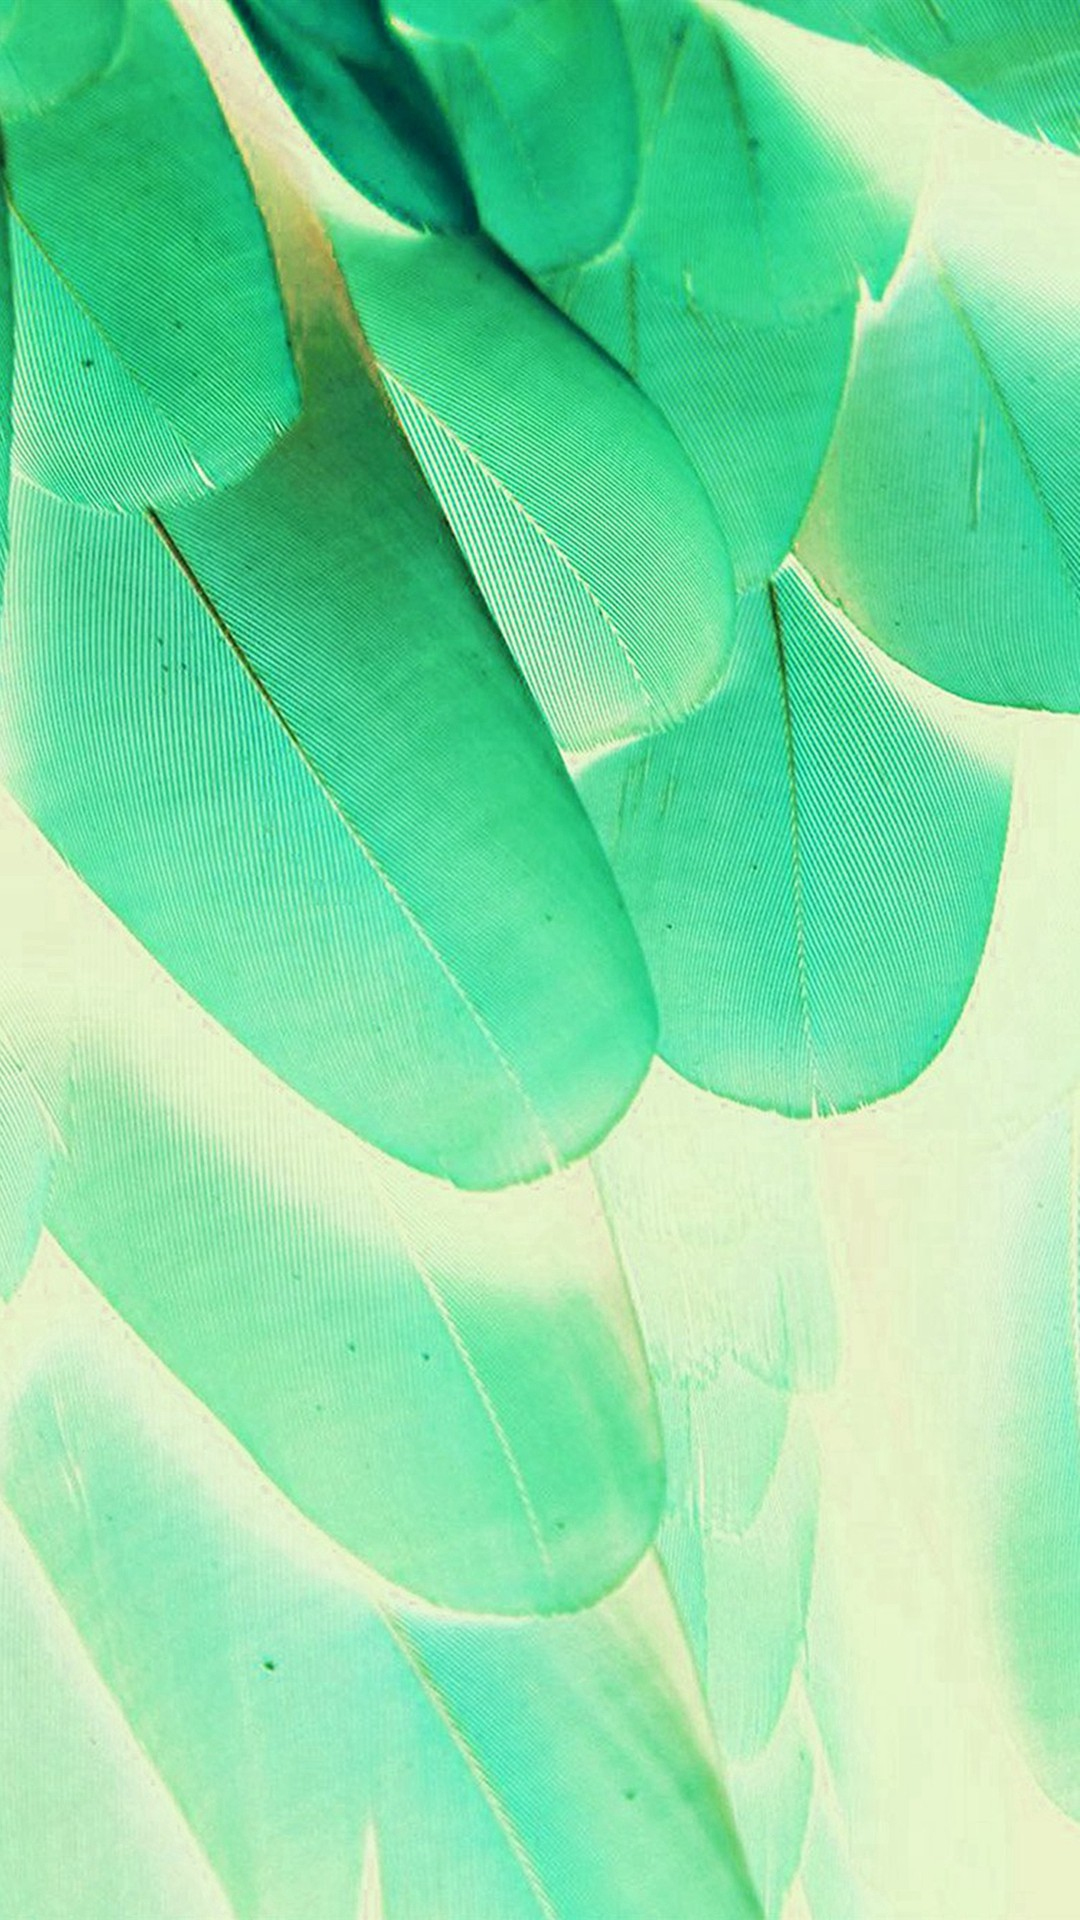 Feather Green Blue Nature Texture Animal Pattern iPhone 6 wallpaper